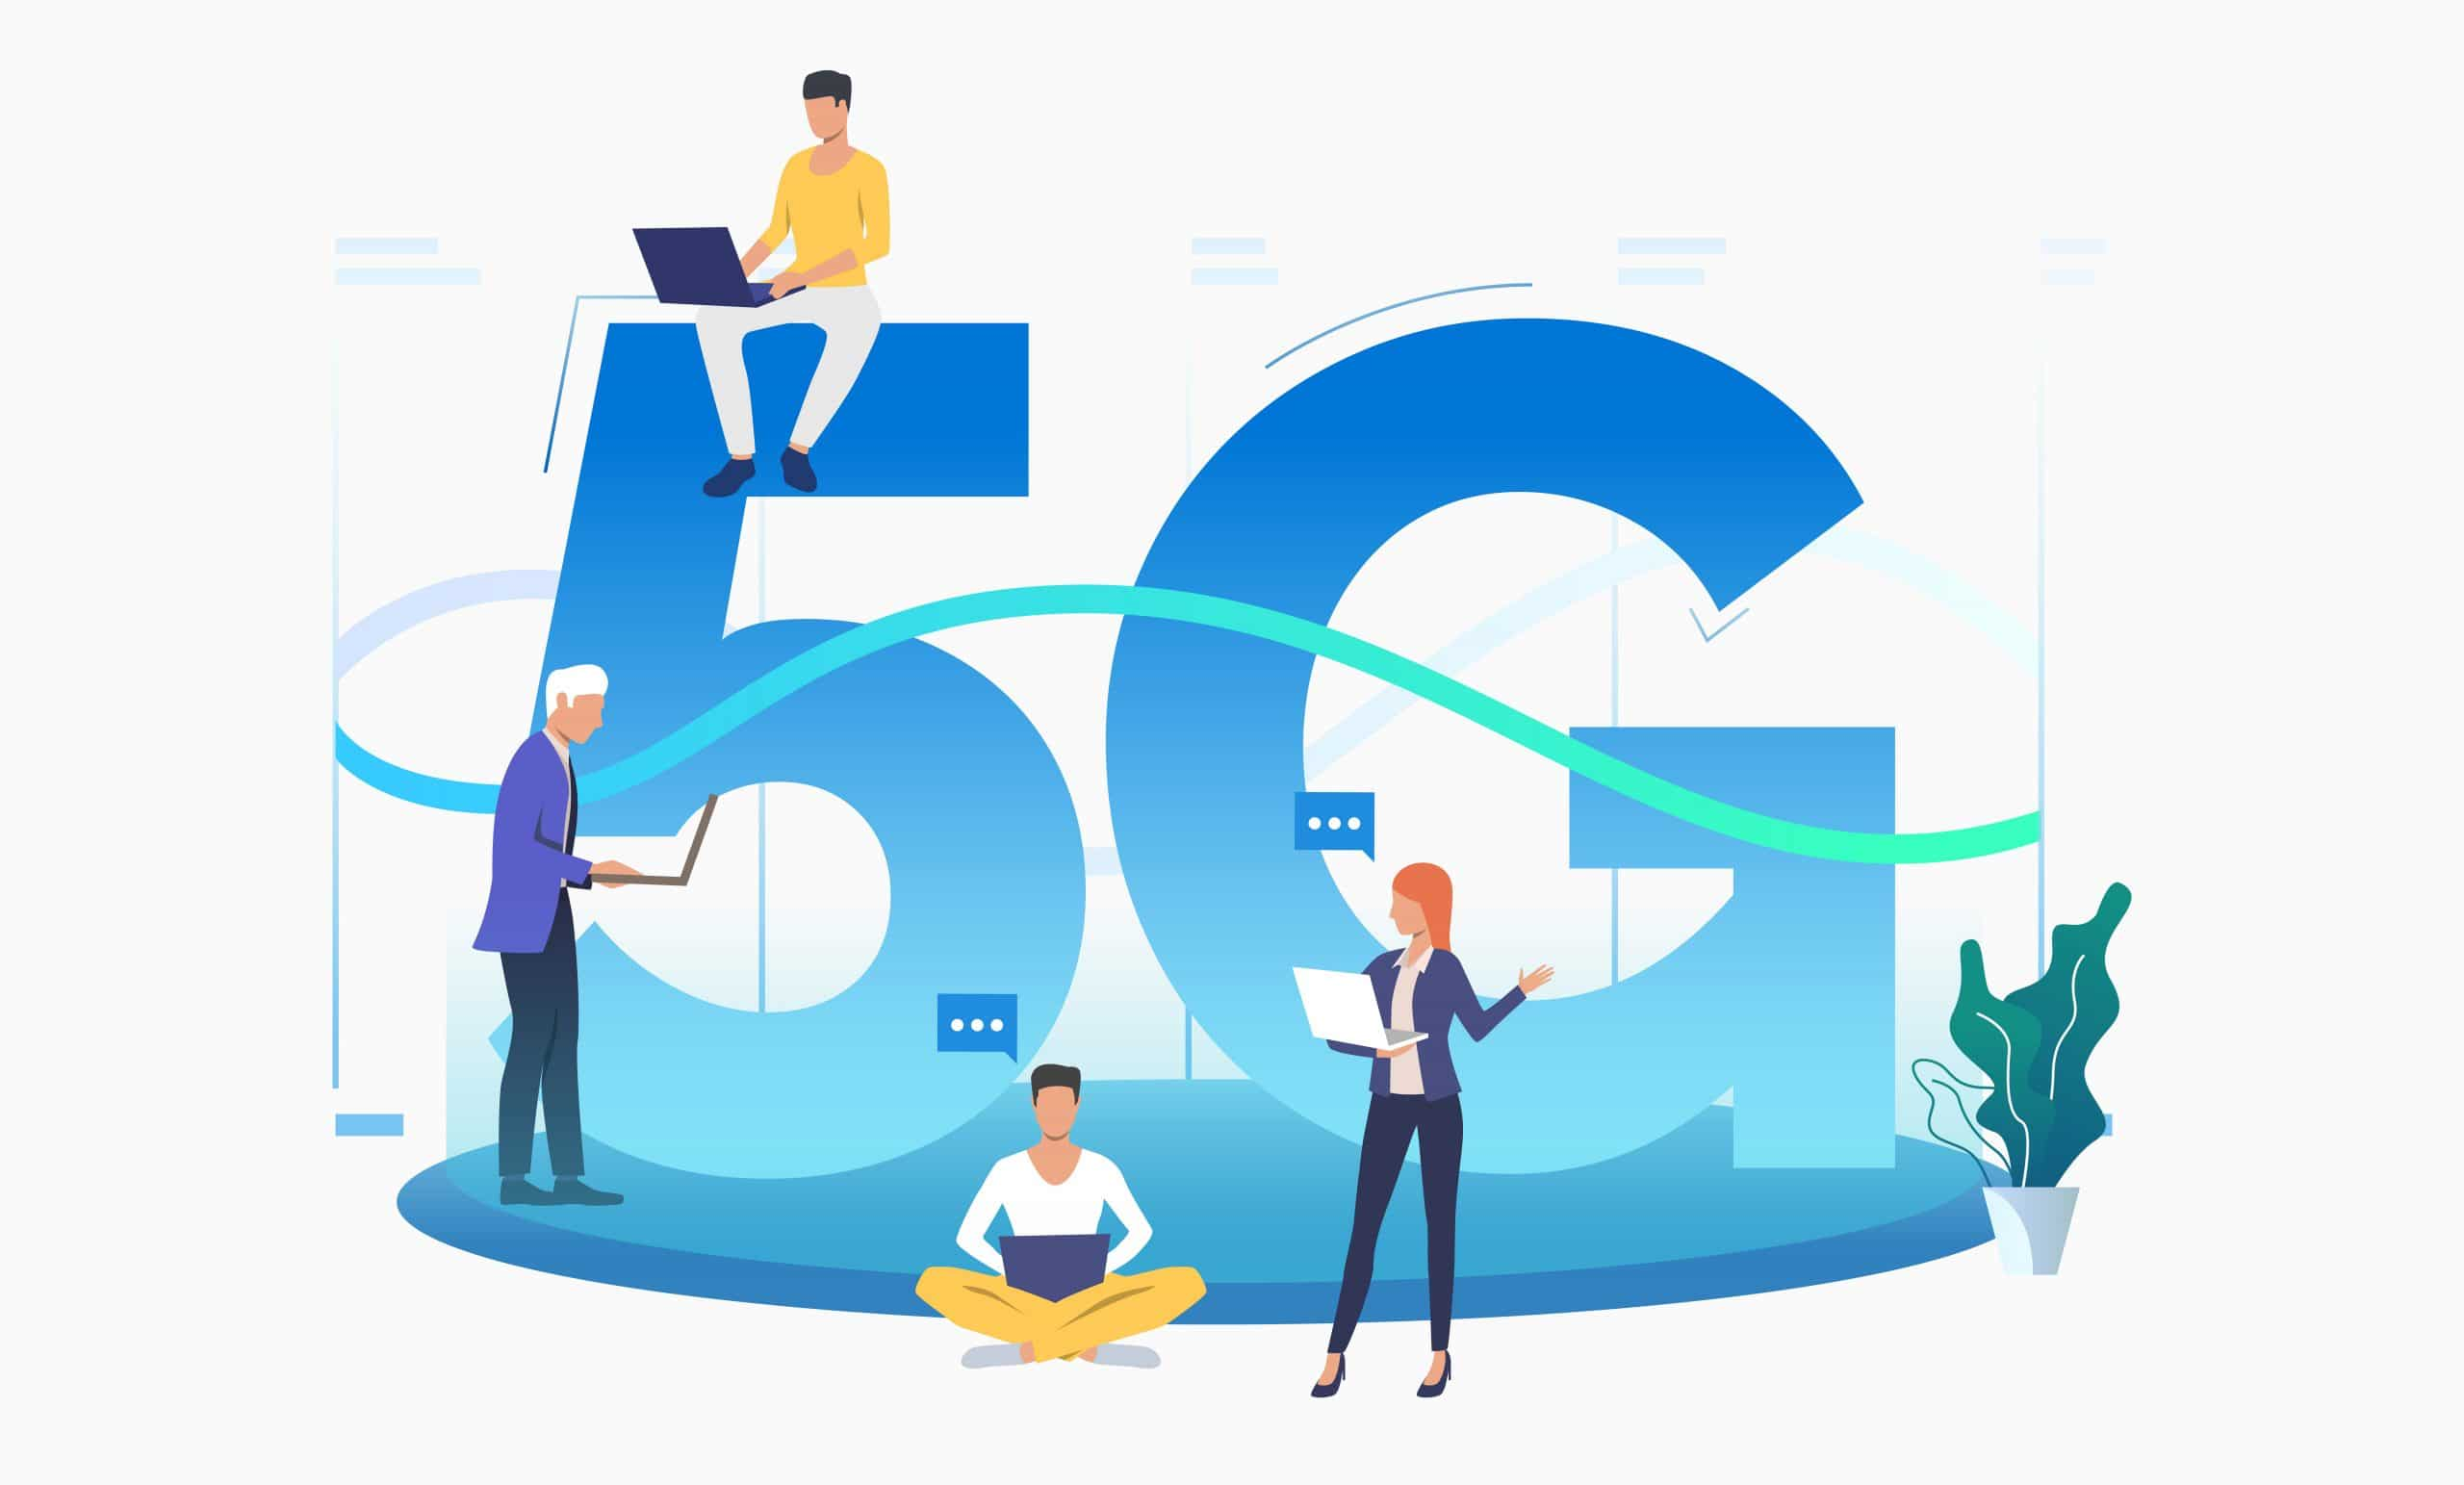 5G changes the process of business outsourcing (BPO)